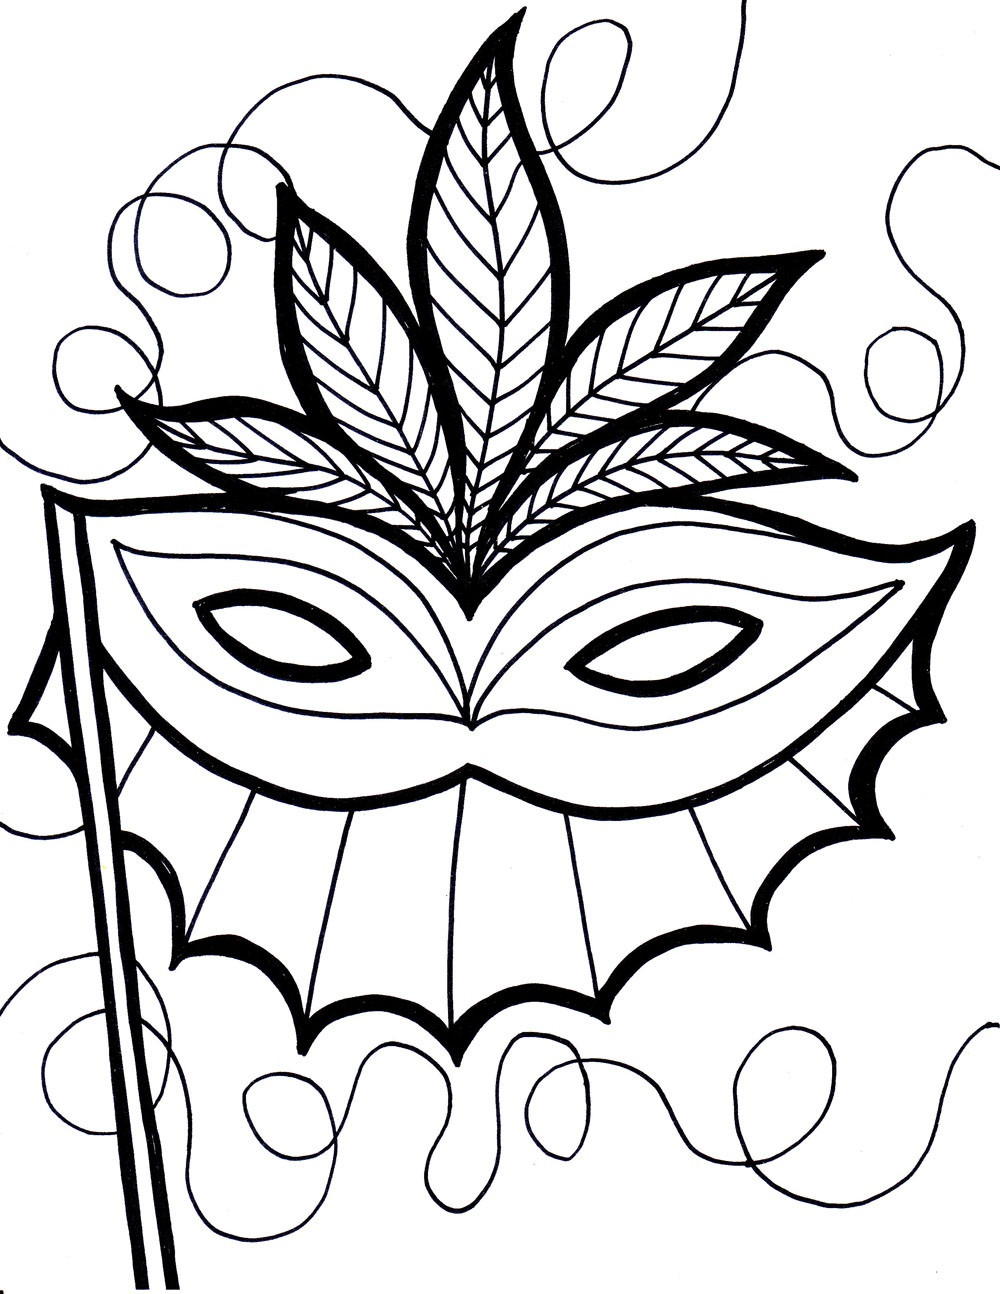 Mardi Gras Coloring Sheets For Kids  Free Printable Mardi Gras Coloring Pages For Kids